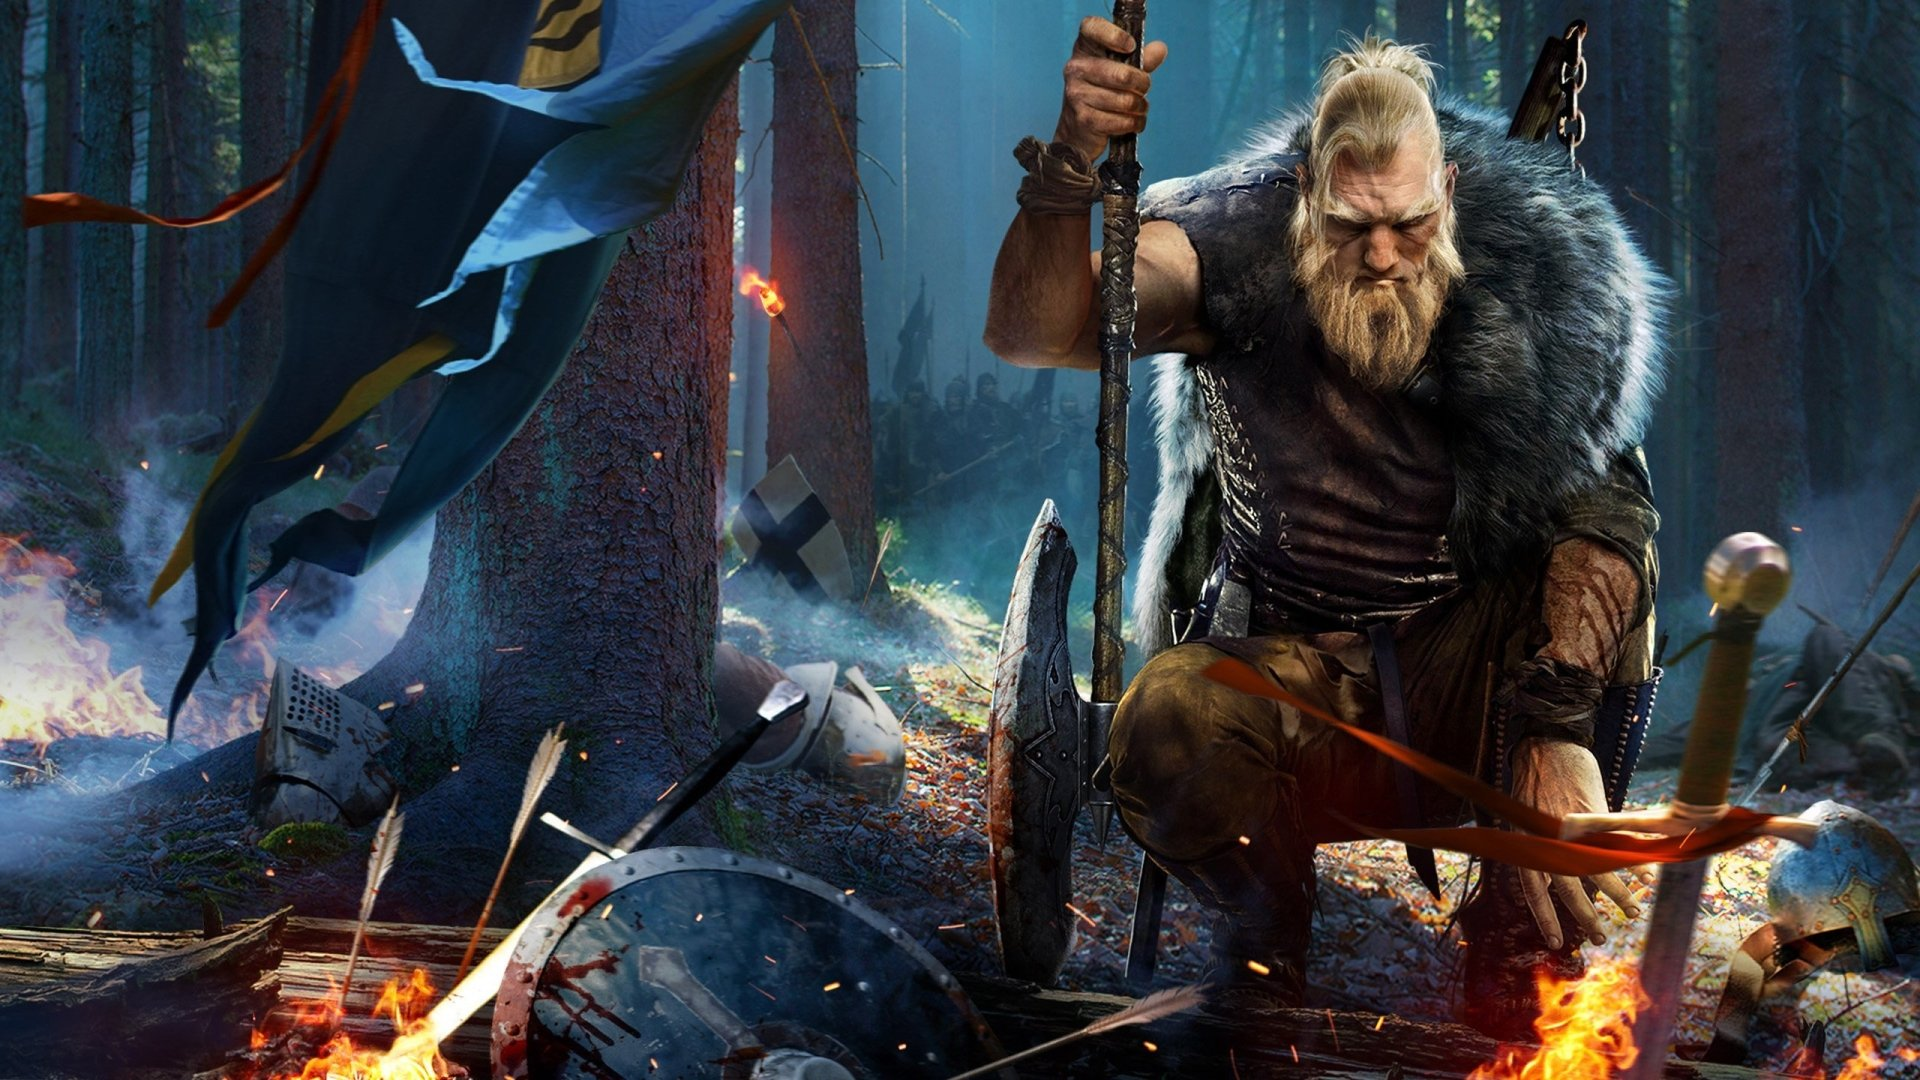 Video Game - Black Desert Online  Warrior Axe Viking Beard Sword Wallpaper